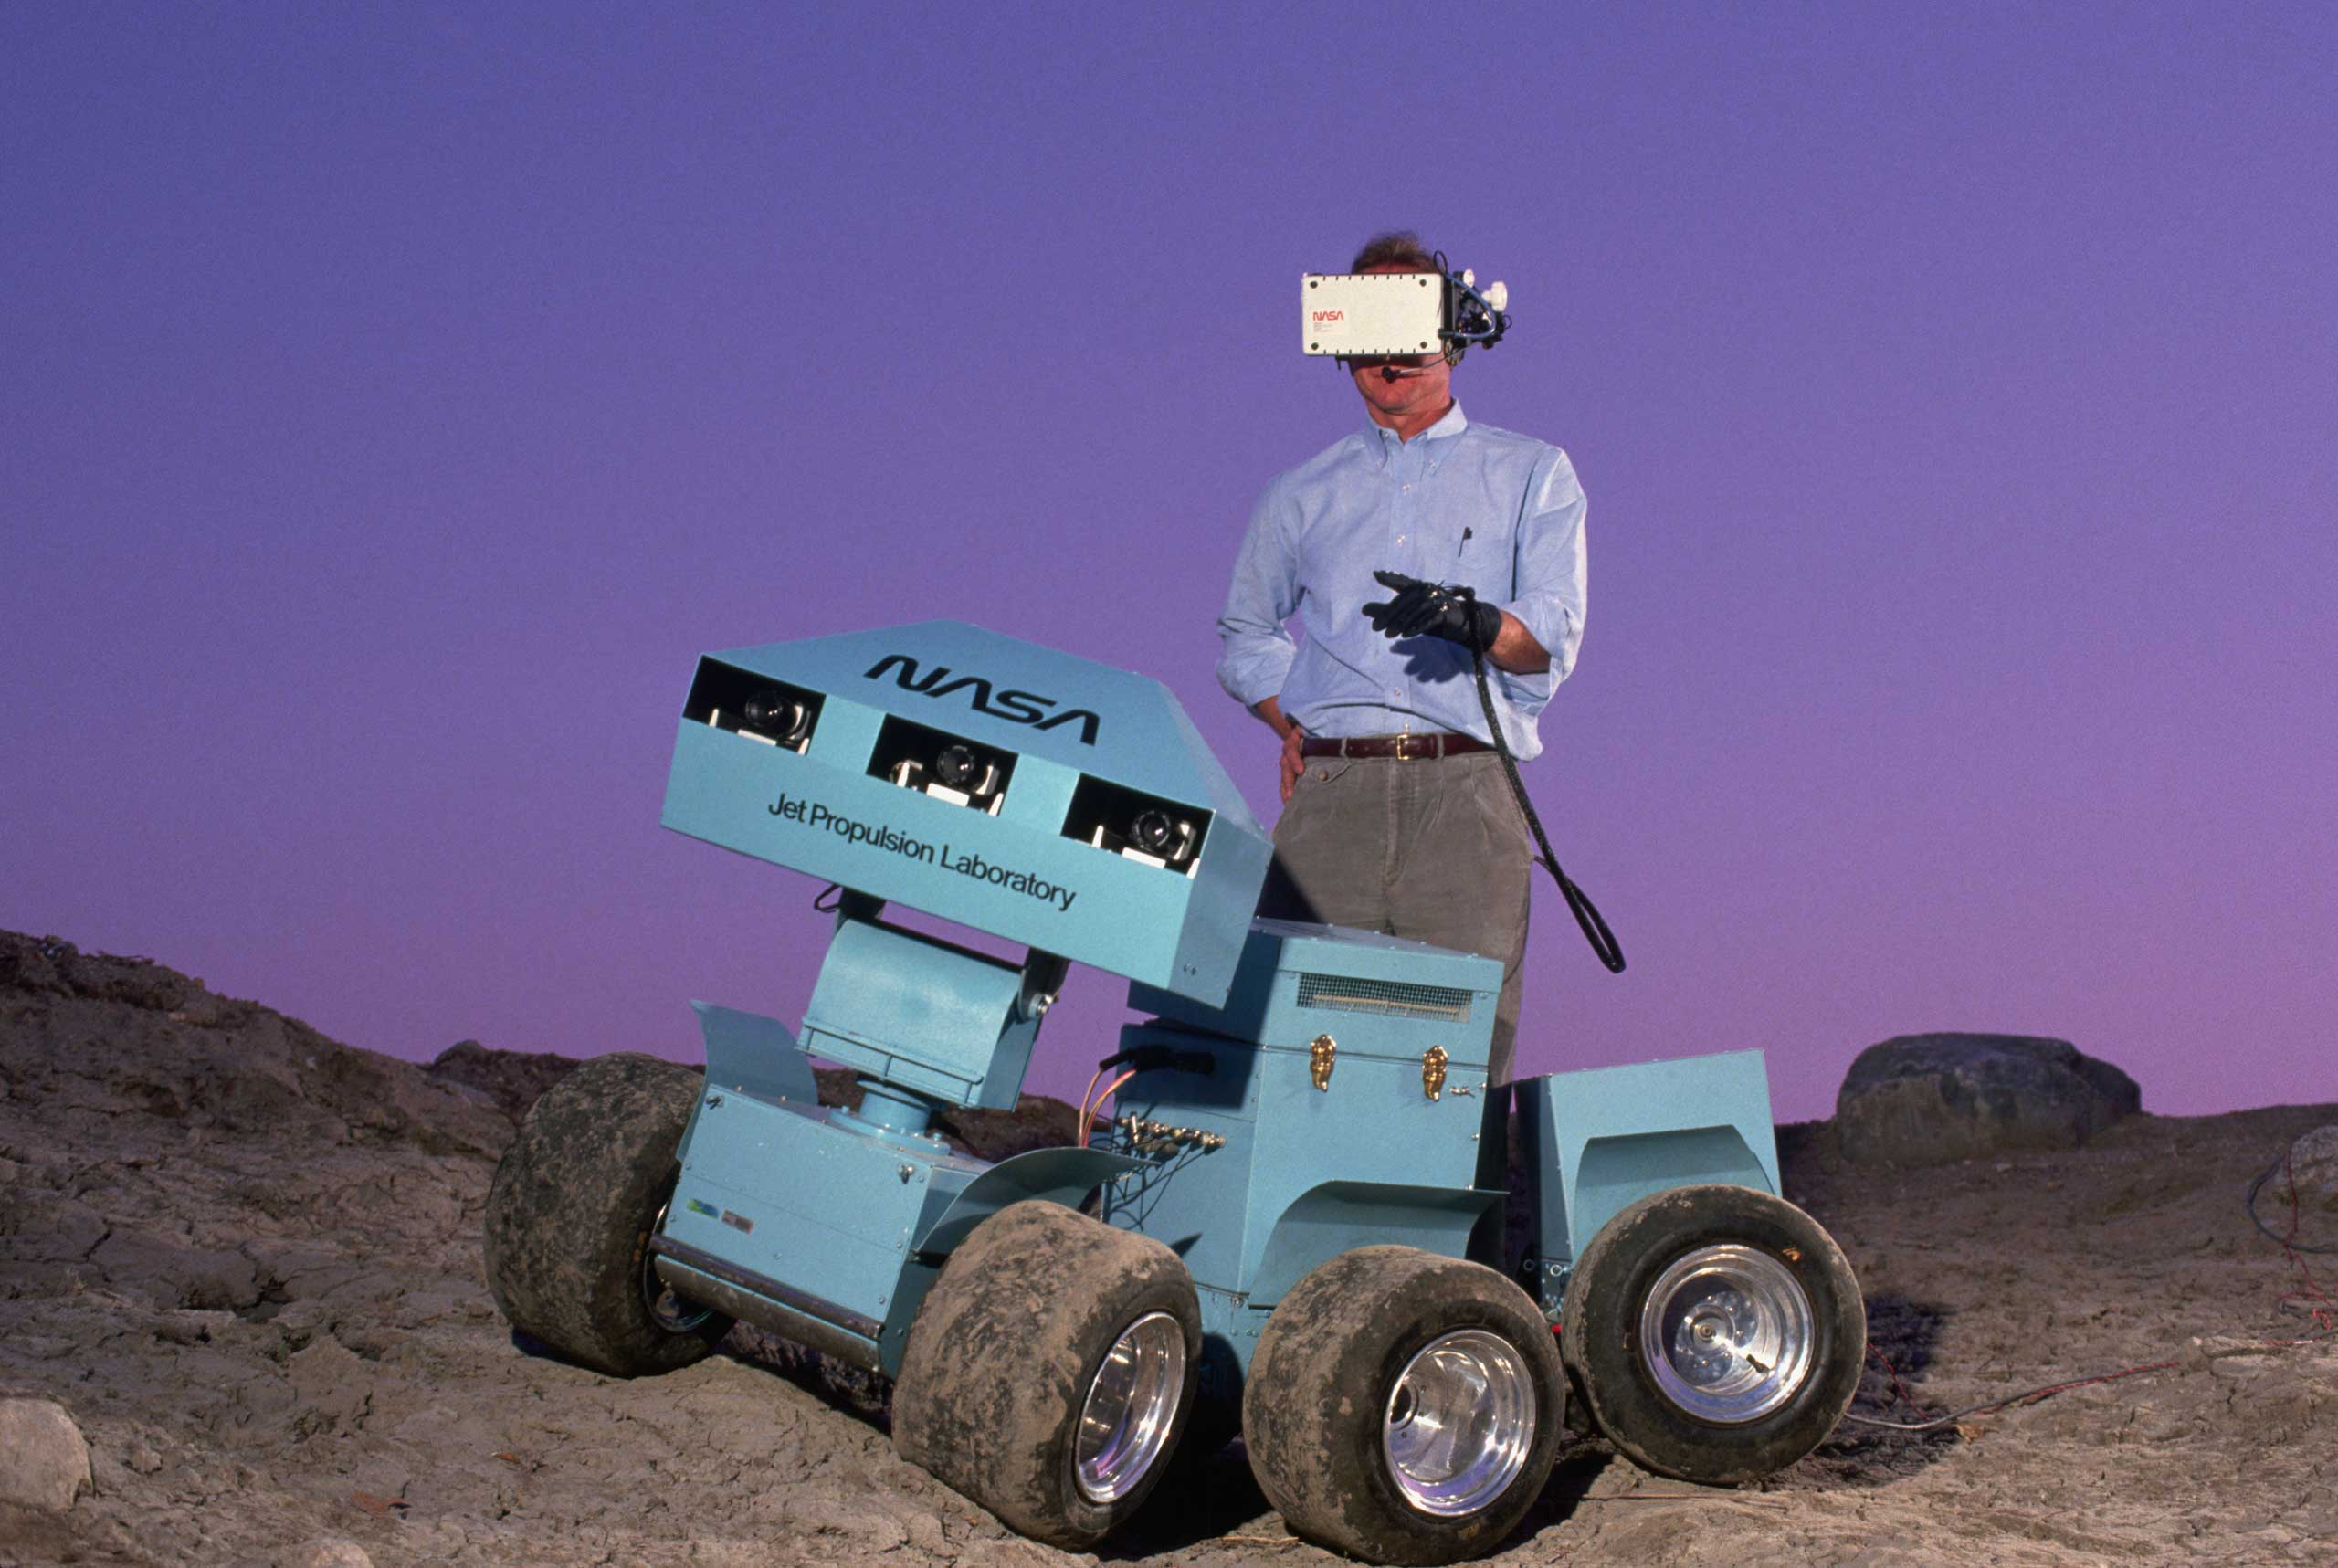 1988                                                              Andrew Mishkin wearing a 3-D virtual display helmet that is connected to a six-wheeled roving vehicle. The rover was meant to explore the surface of Mars and send back information.